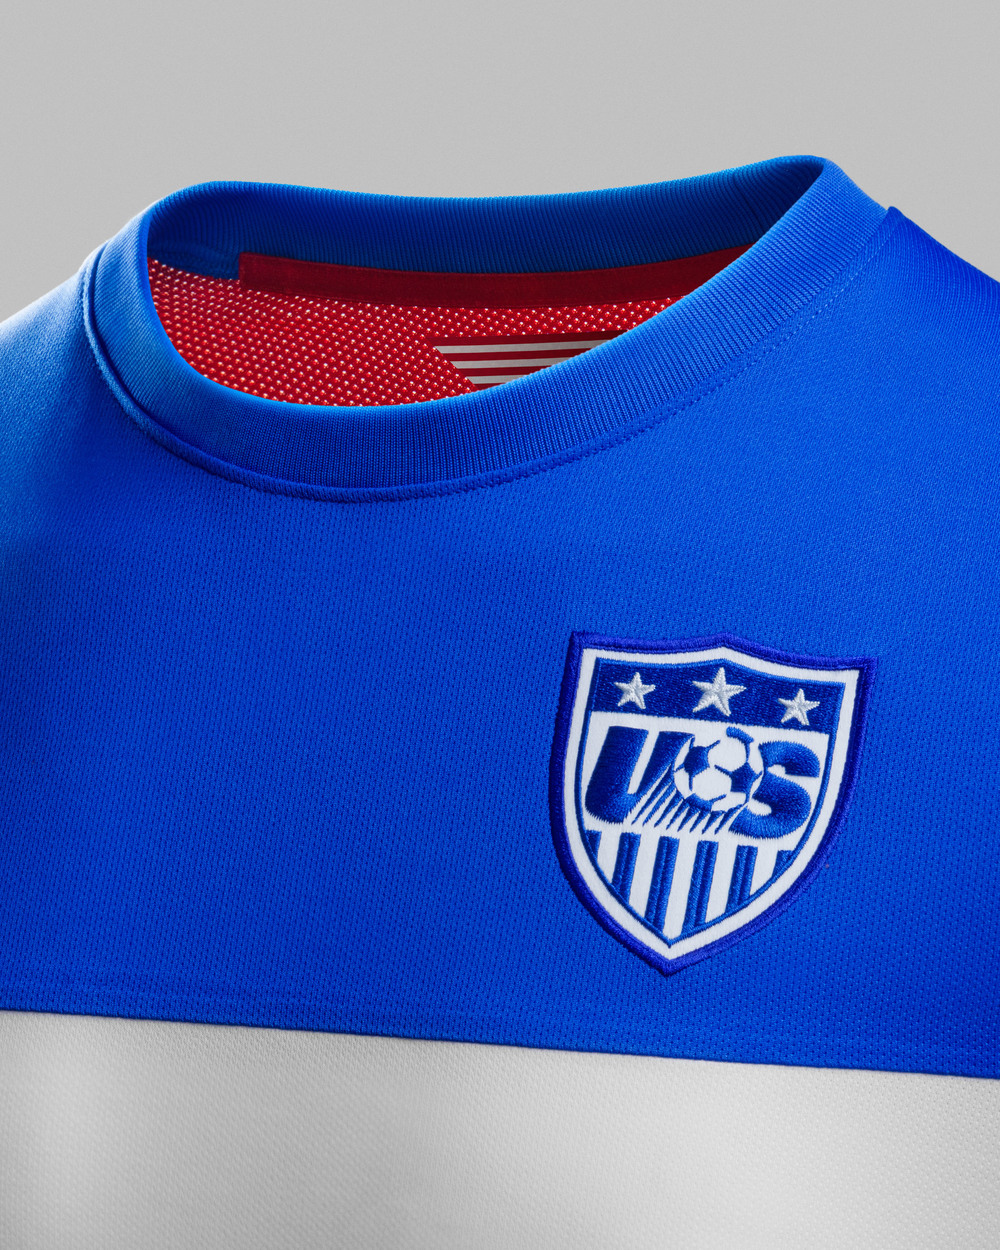 USA_AWAY_COLLAR2_PRIDE_original.jpg